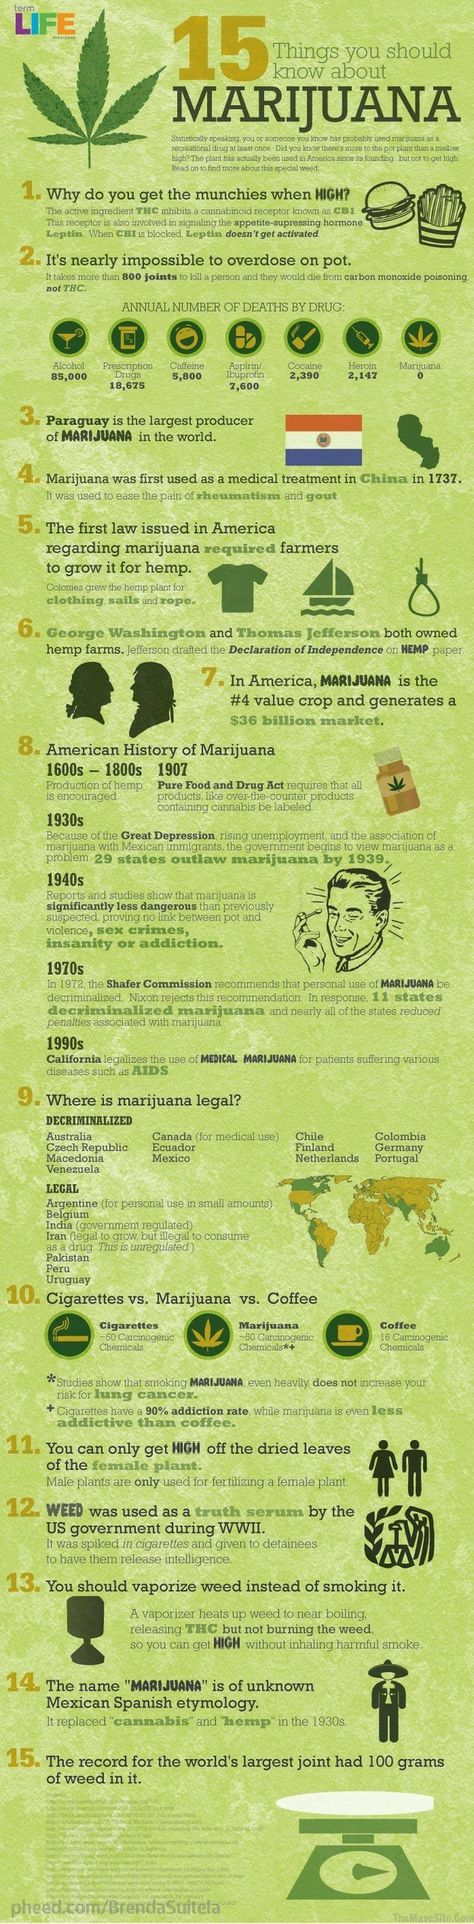 15 things you should know about marijuana... Vapors